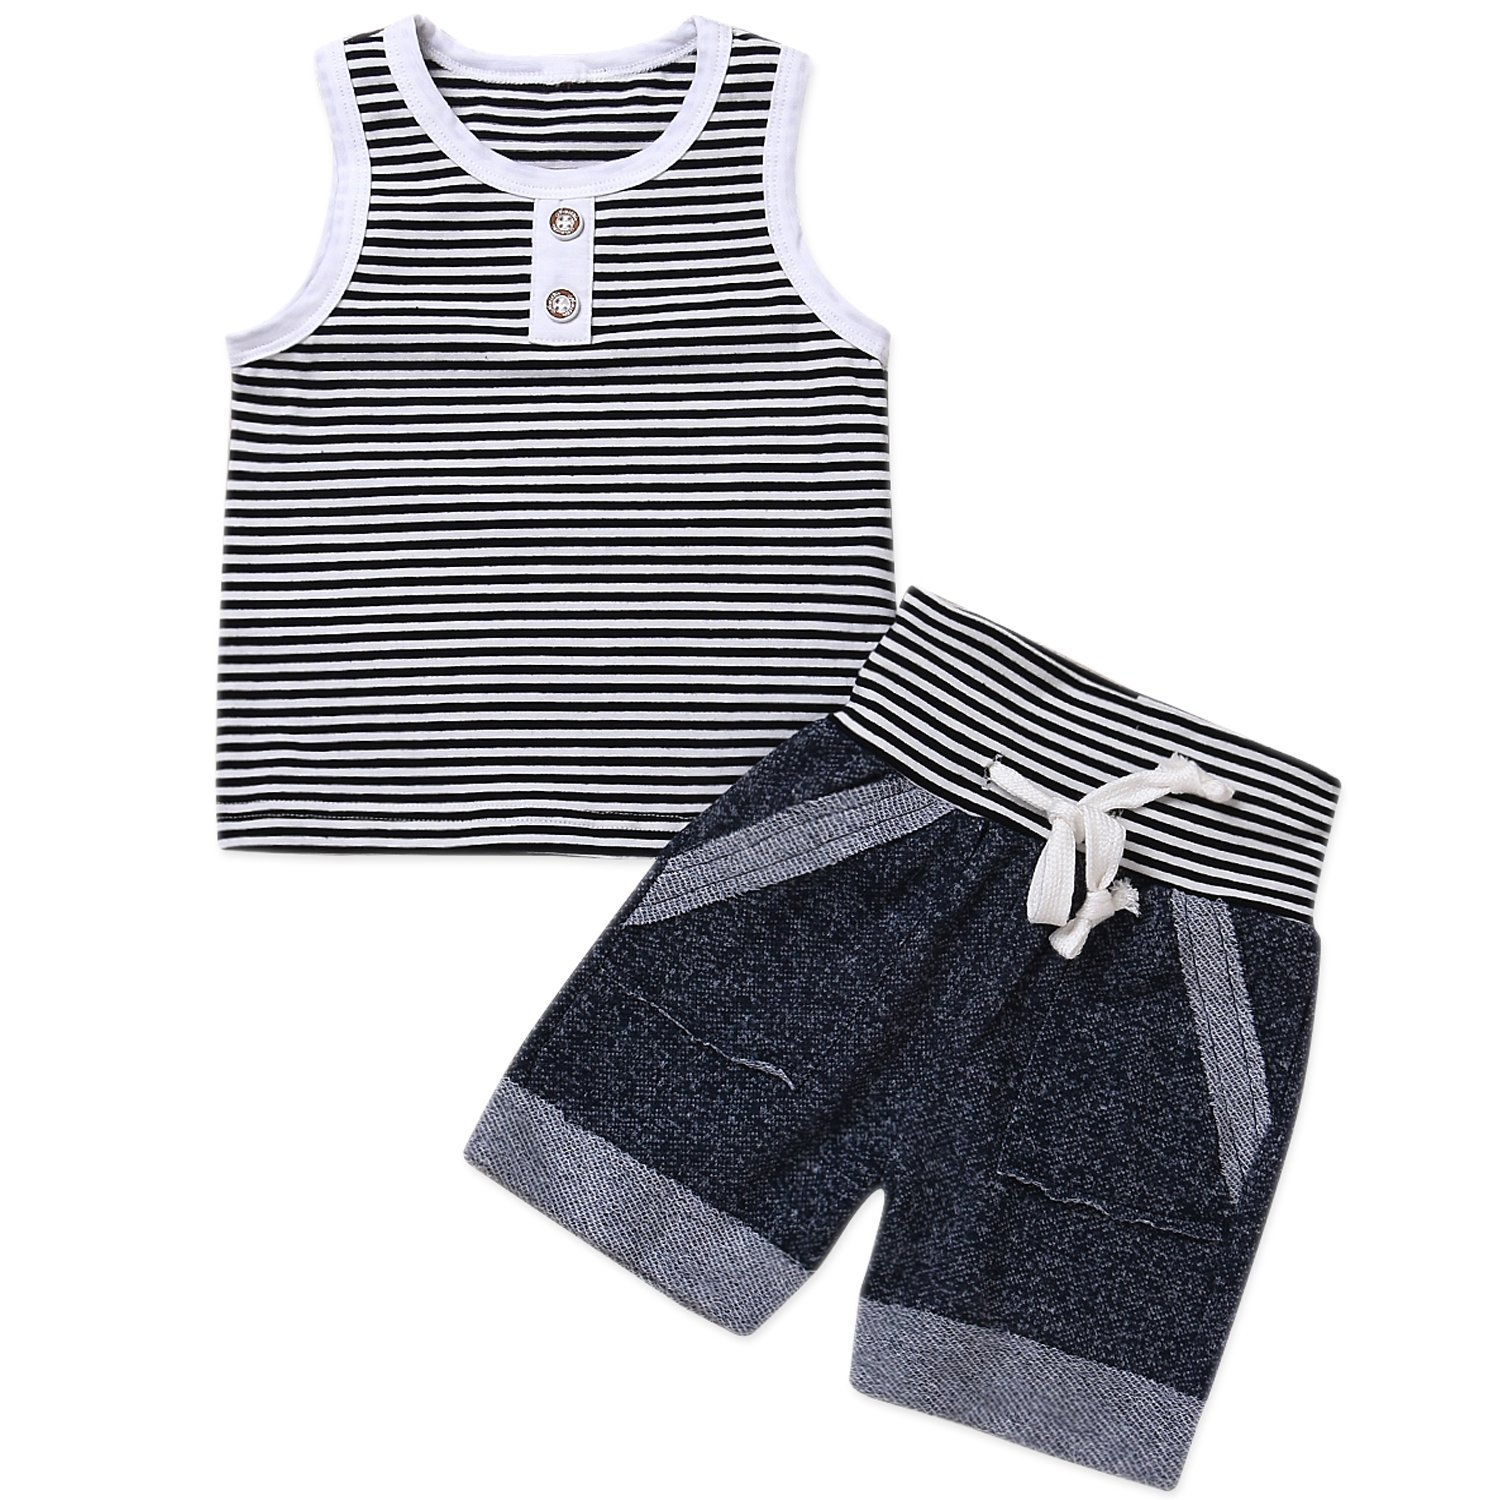 HappyMA Toddler Baby Boy Summer Outfits Stripe Vest Top Sleeveless T-Shirt +Shorts 2PCS Clothes Set (24 Months)